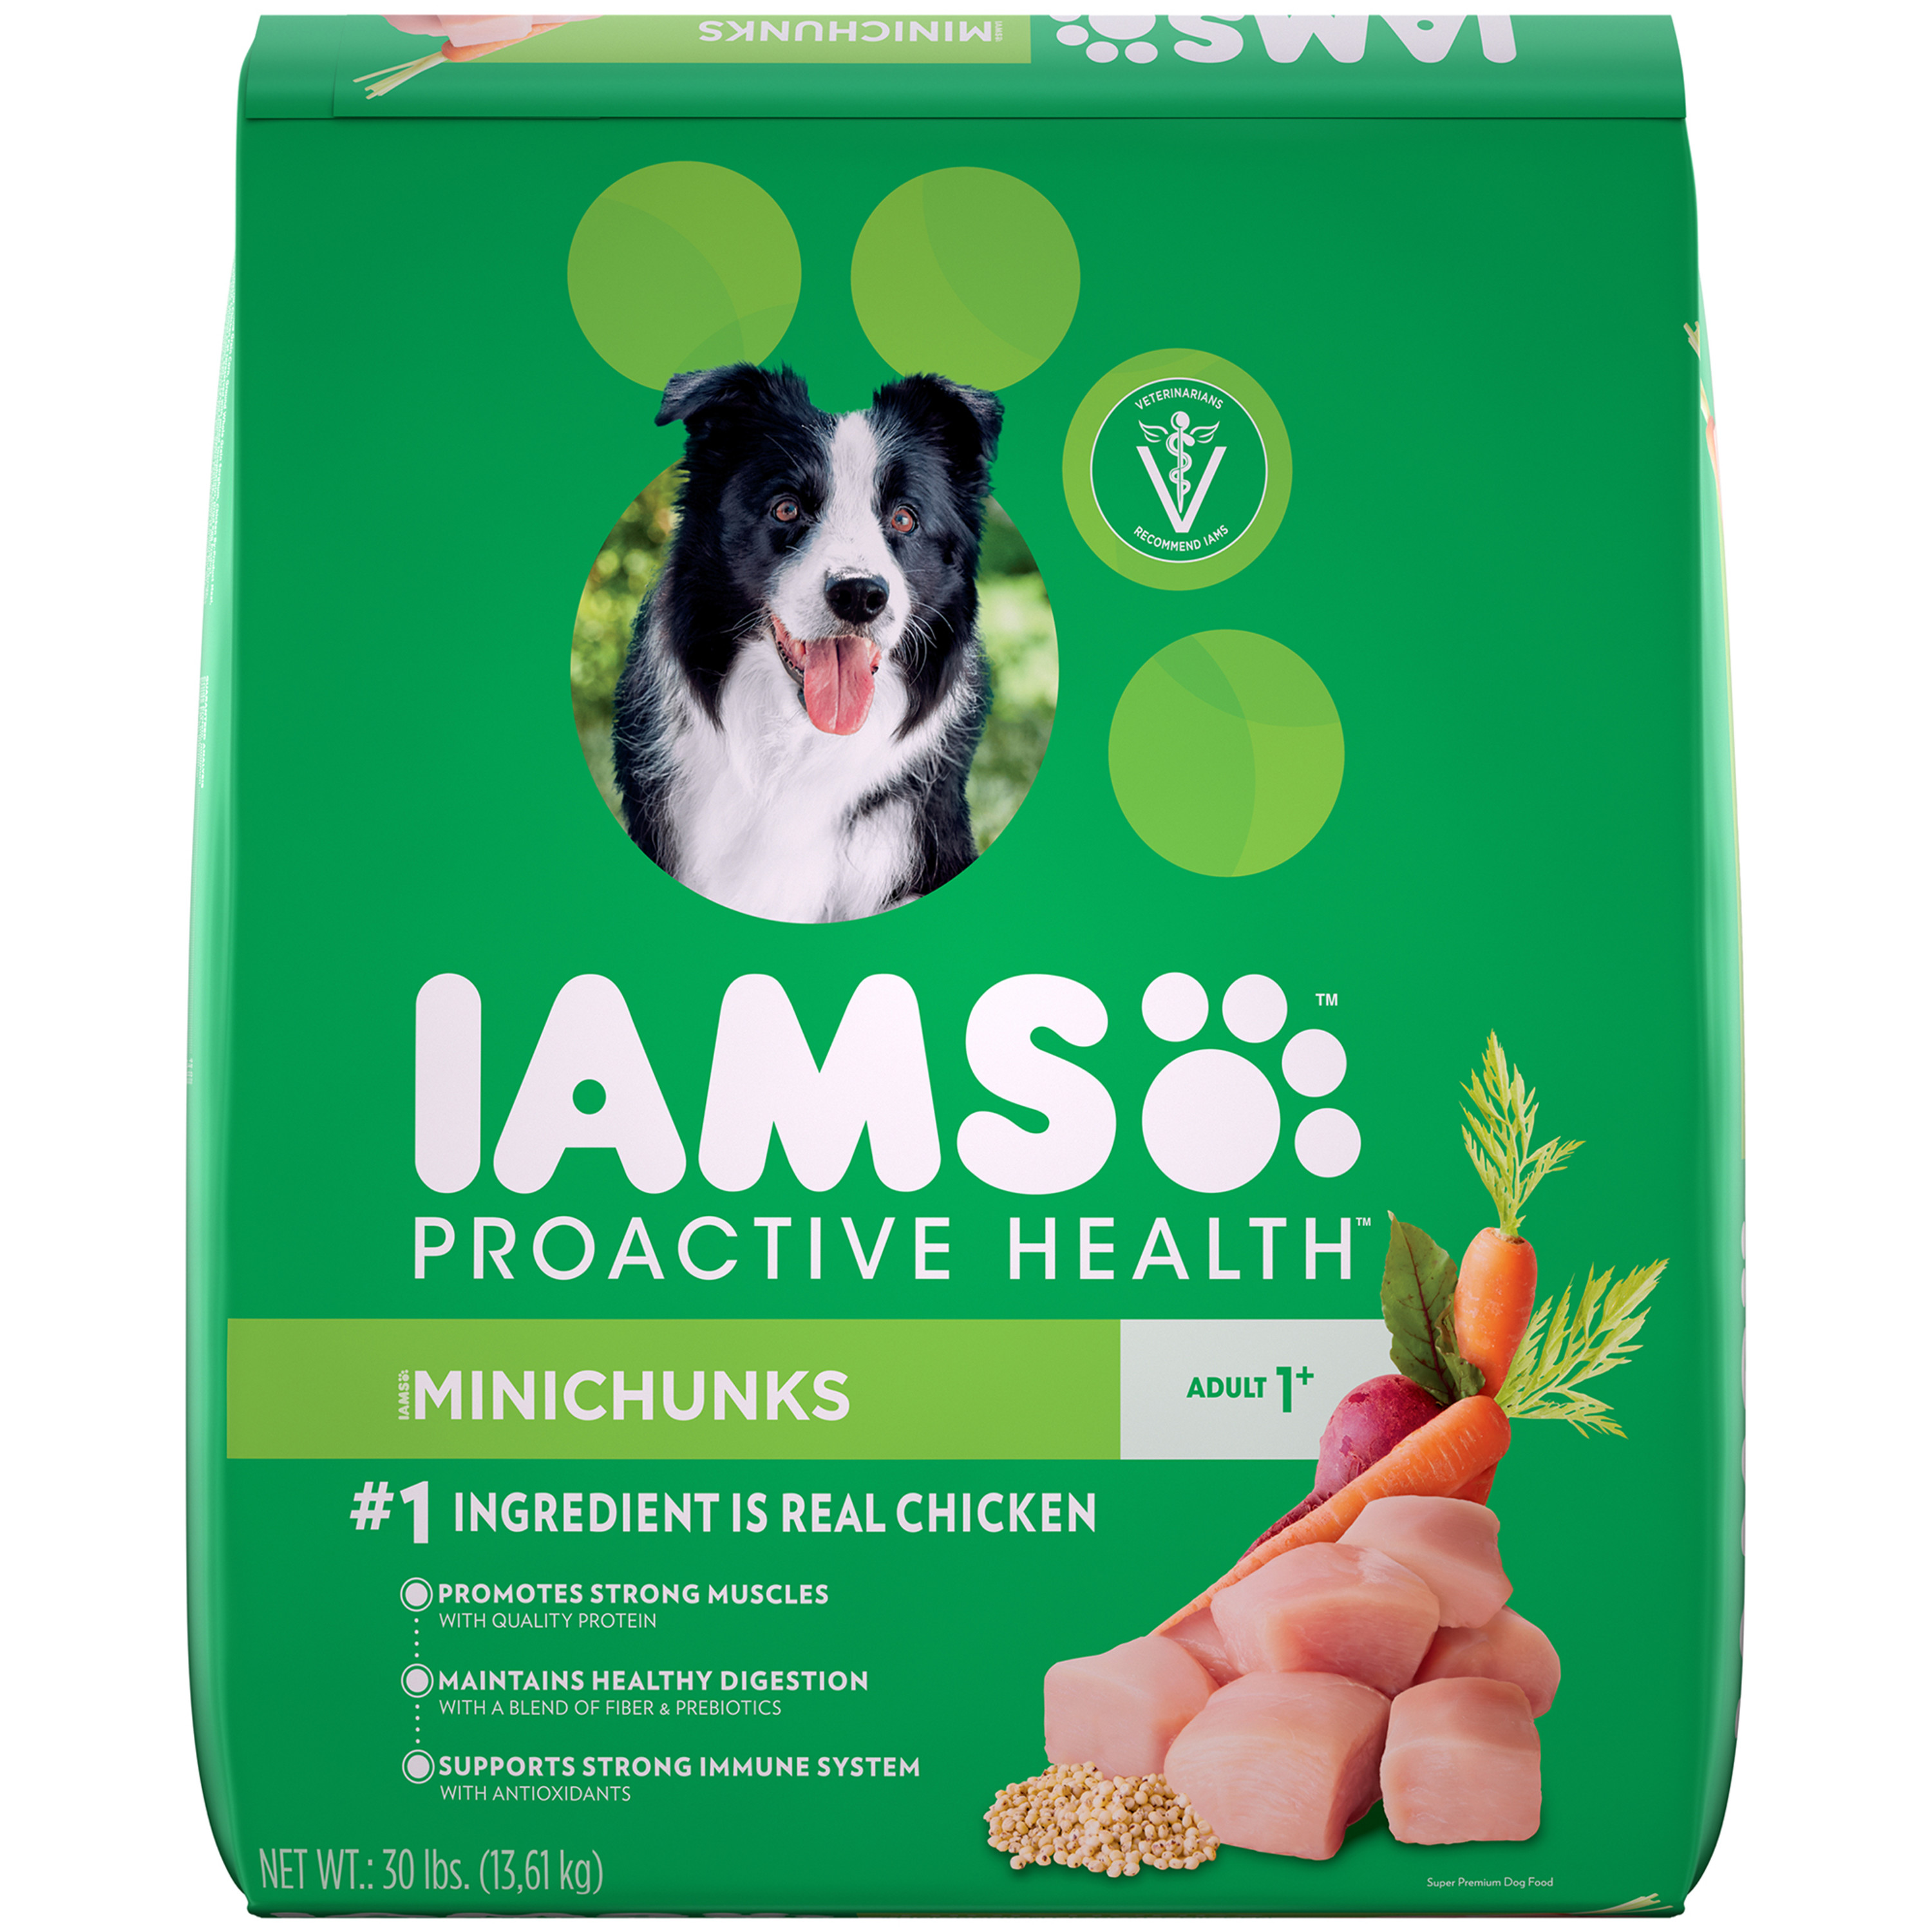 Iams Proactive Health Minichunks Dry Dog Food, Chicken, 30 Lb